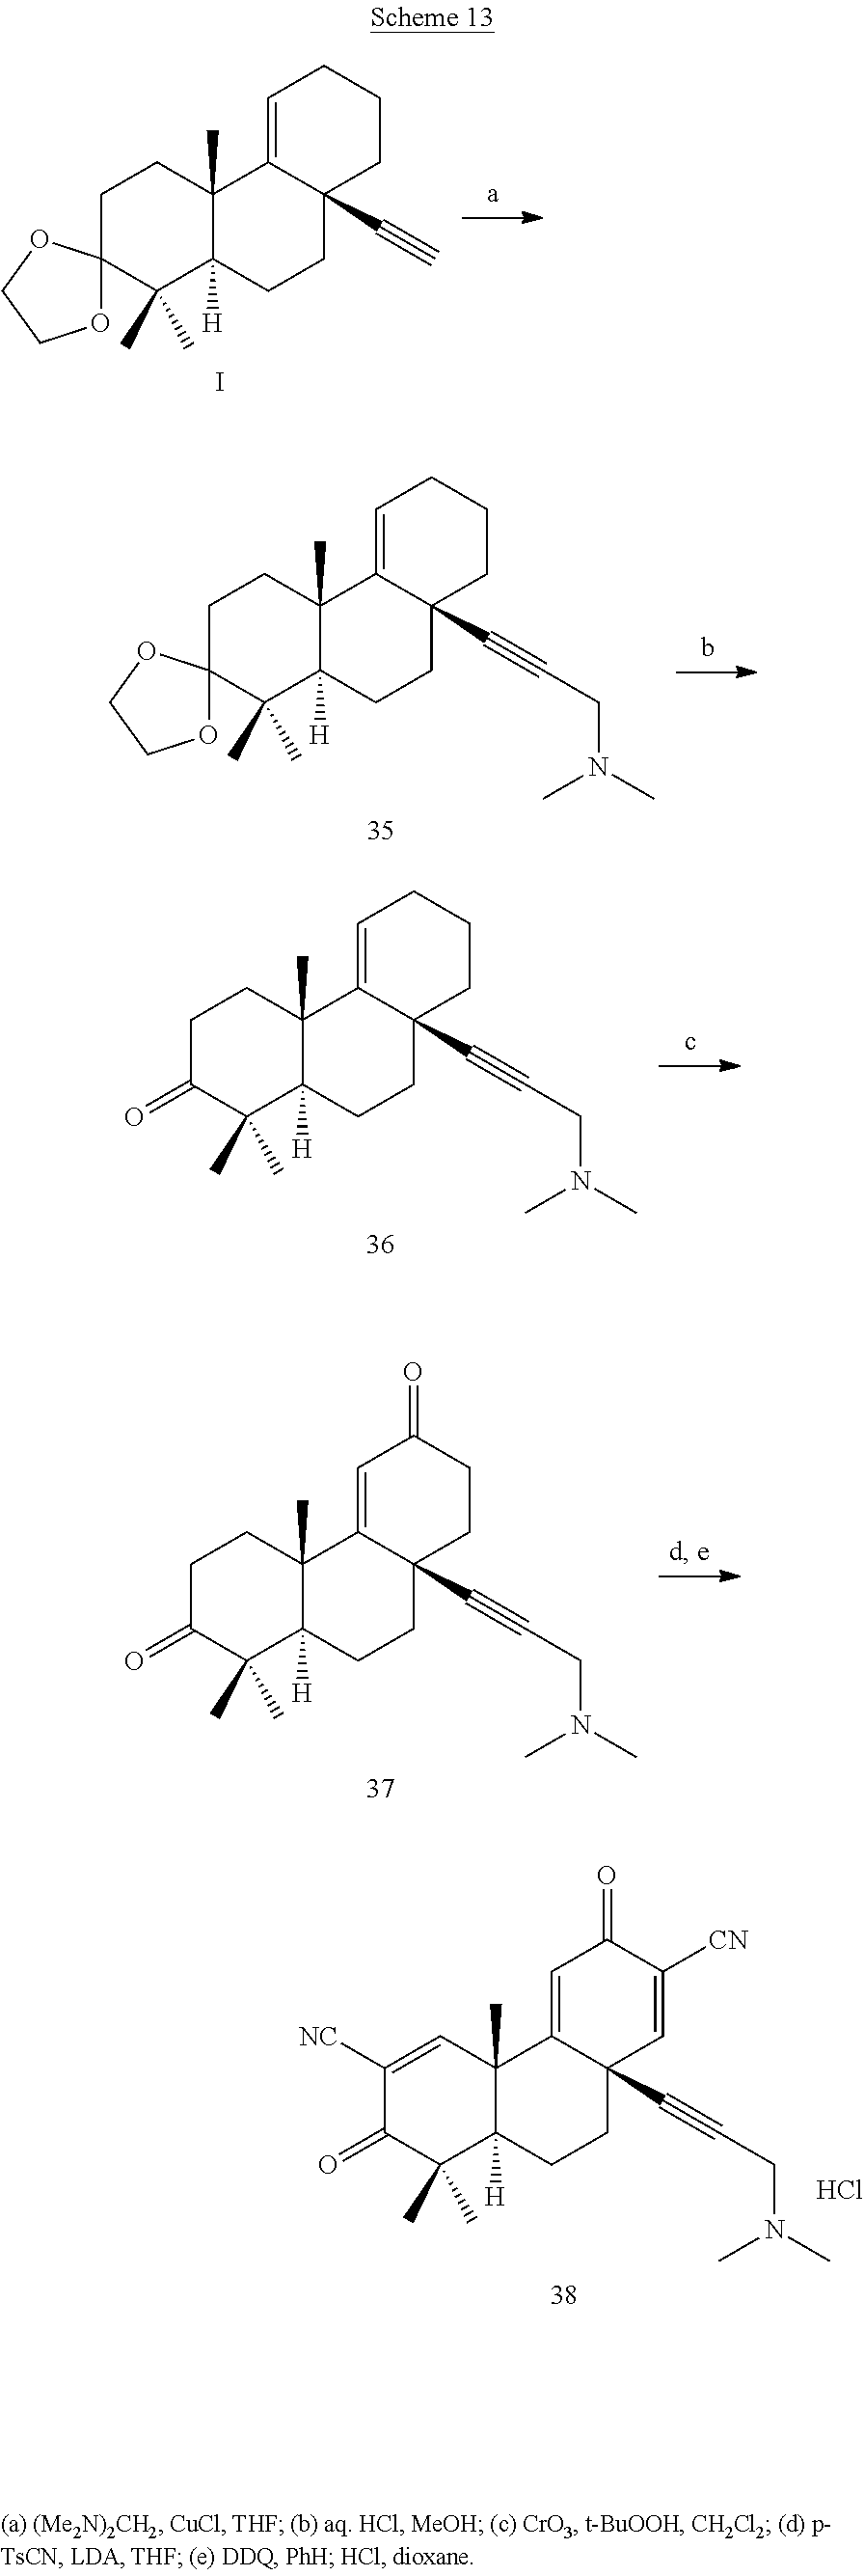 us8067394b2 synthesis and biological activities of new tricyclic  figure us08067394 20111129 c00080